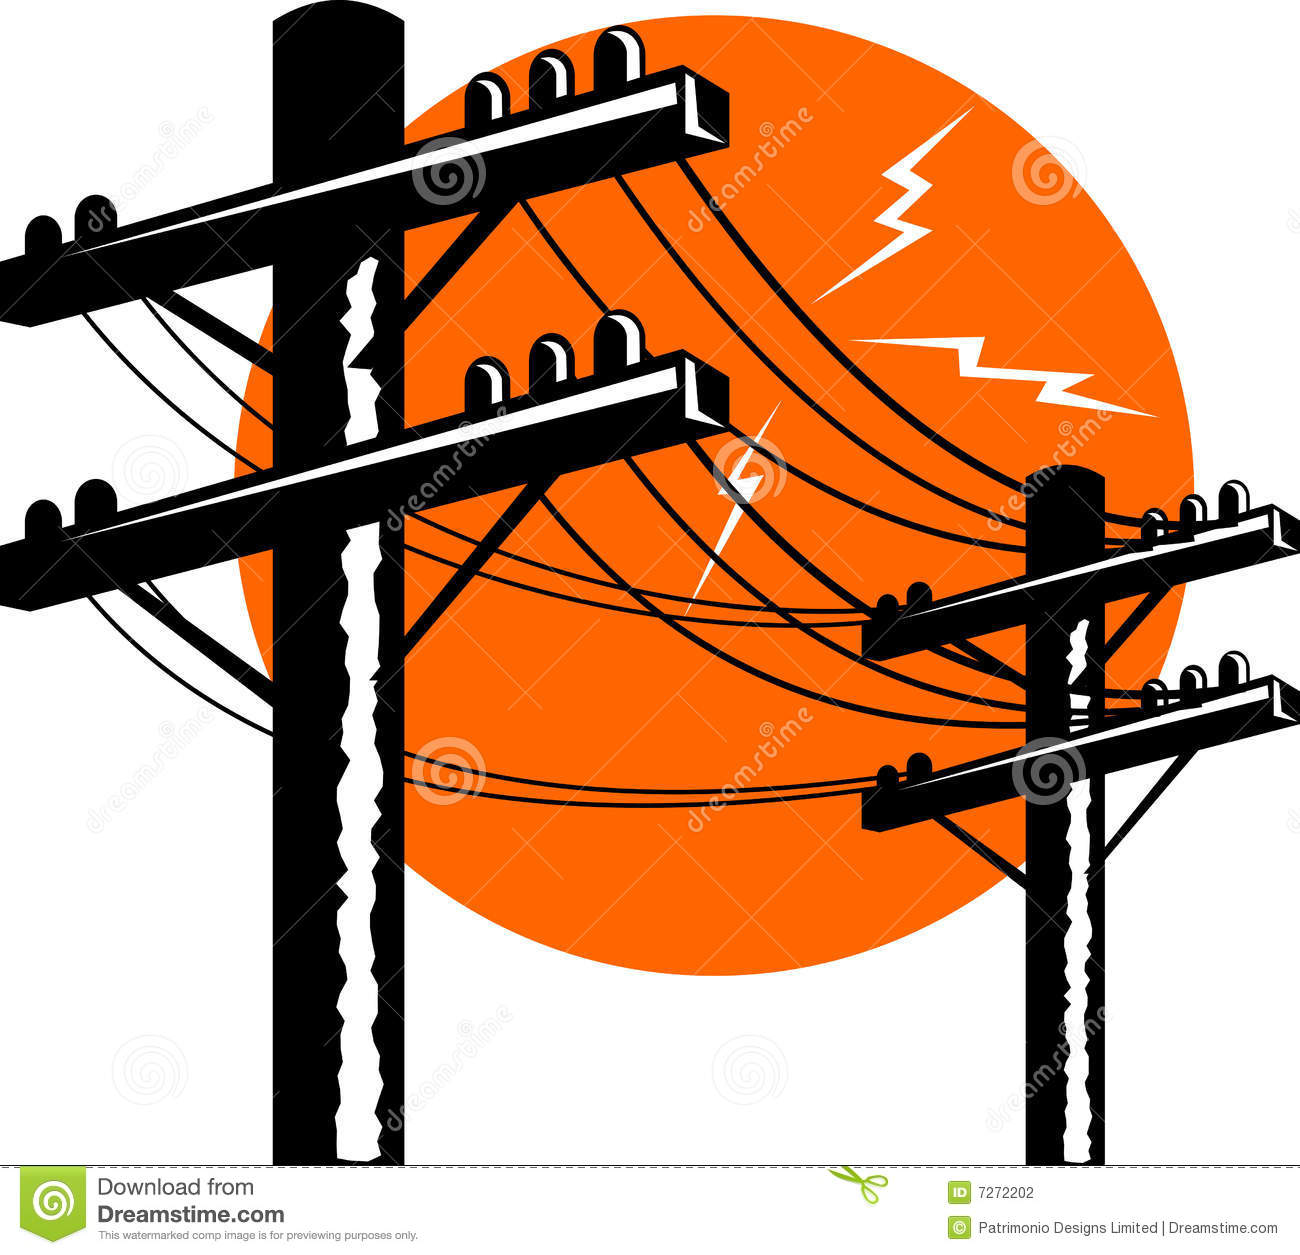 Electric Company Clipart.